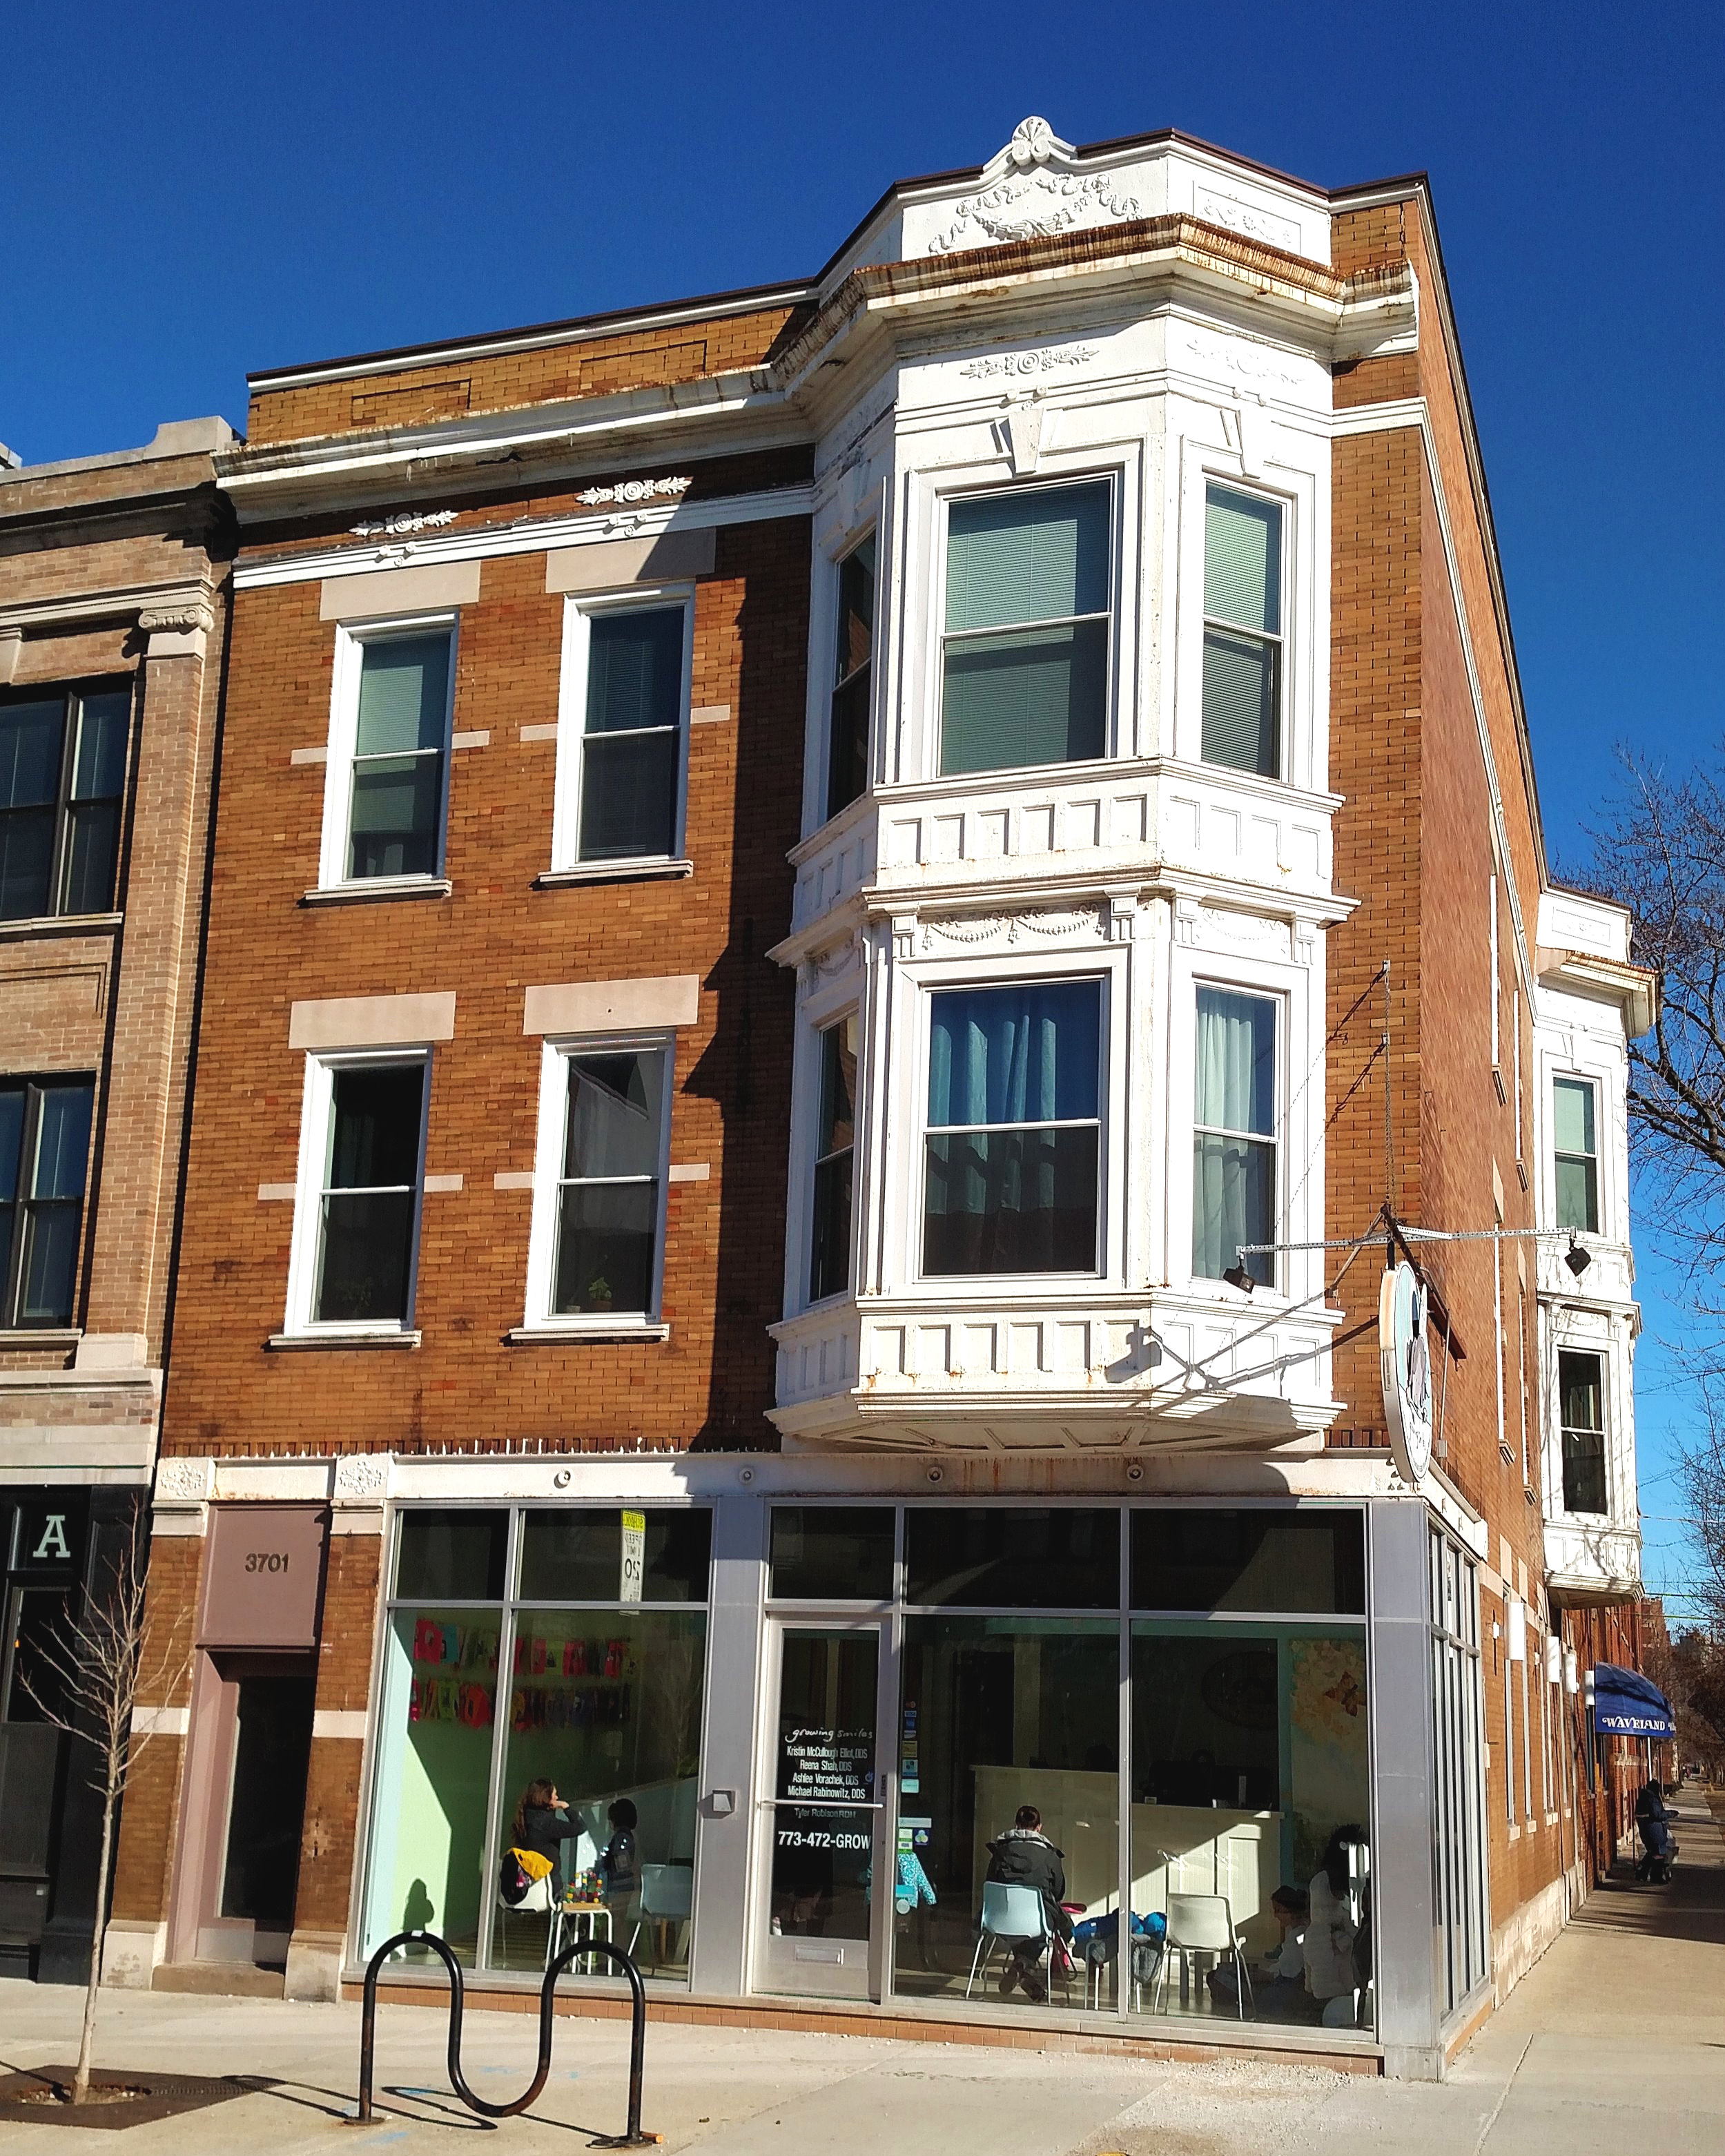 3701 N. Southport - commercial and RESIDENTIAL